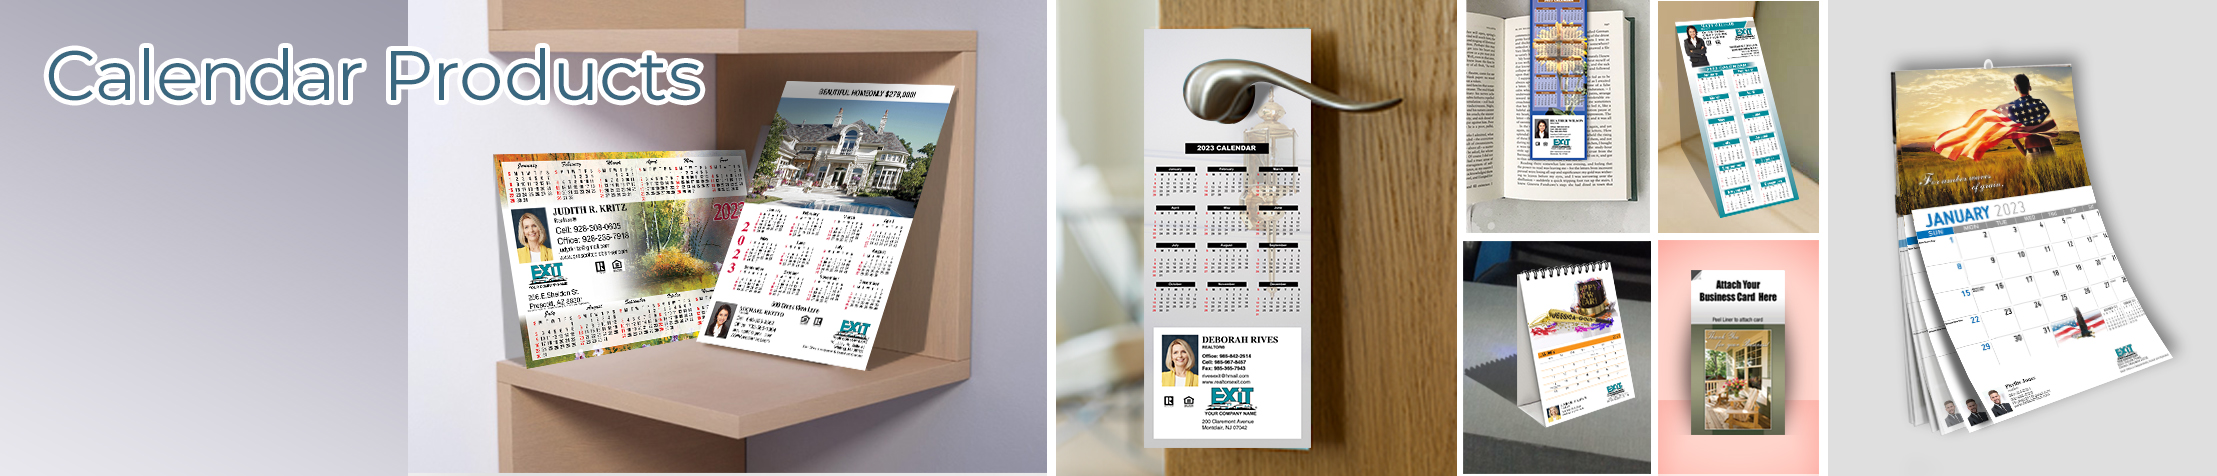 Exit Realty Calendar Products - Exit Realty approved vendor 2019 calendars, magnets, door hangers, bookmarks, tear away note pads | BestPrintBuy.com